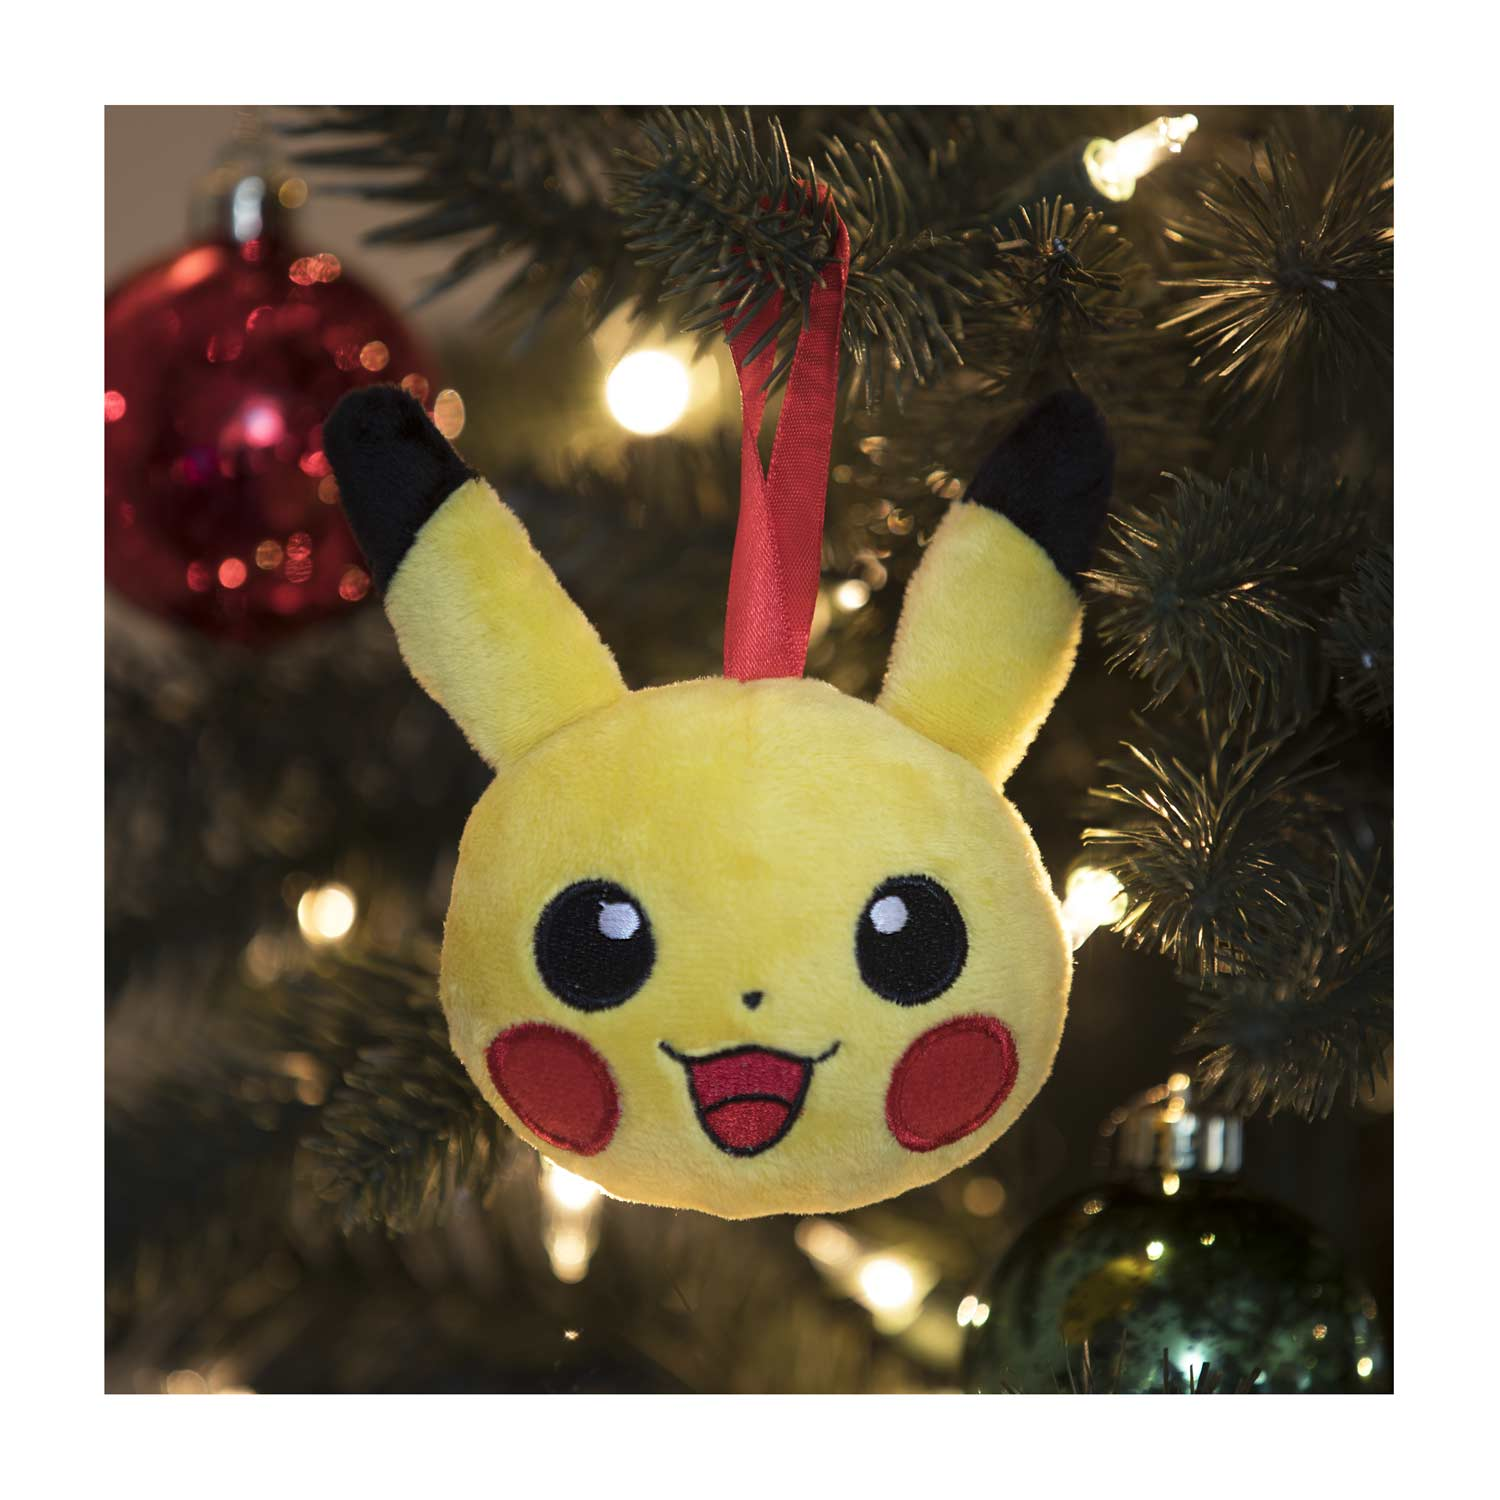 Pikachu Christmas Ornament.Pikachu Holiday Plush Ornaments 4 Pack